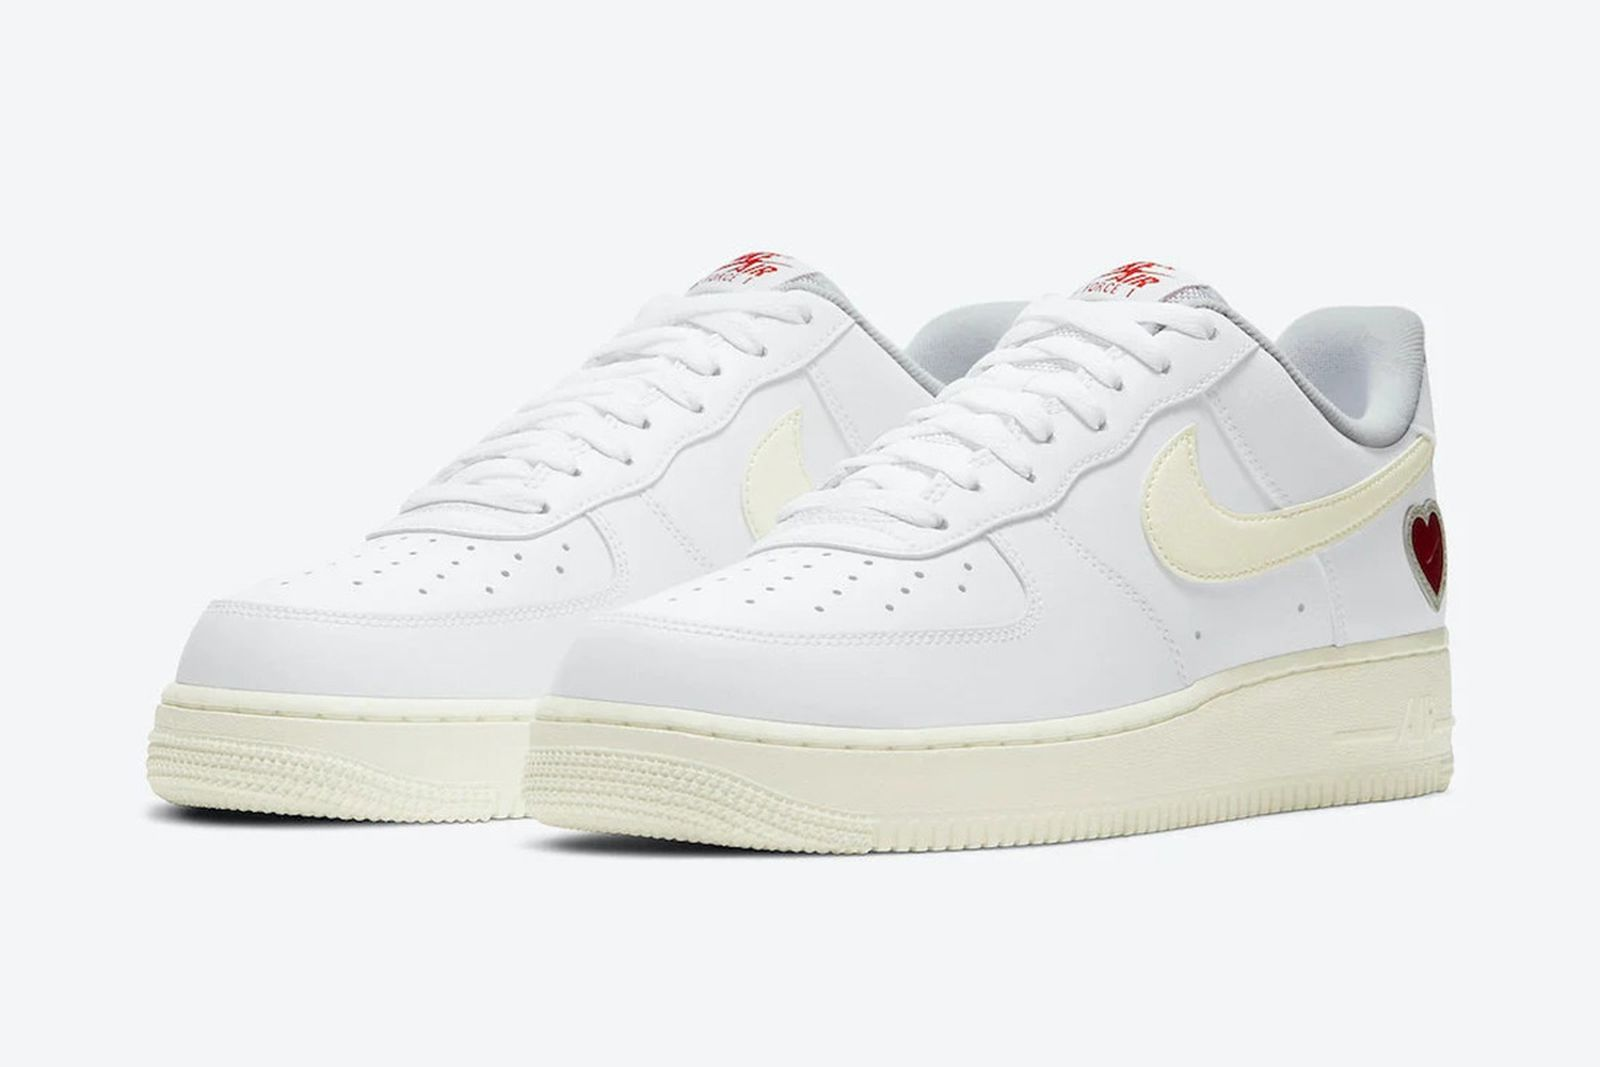 nike-air-force-1-valentines-day-2021-release-date-price-01